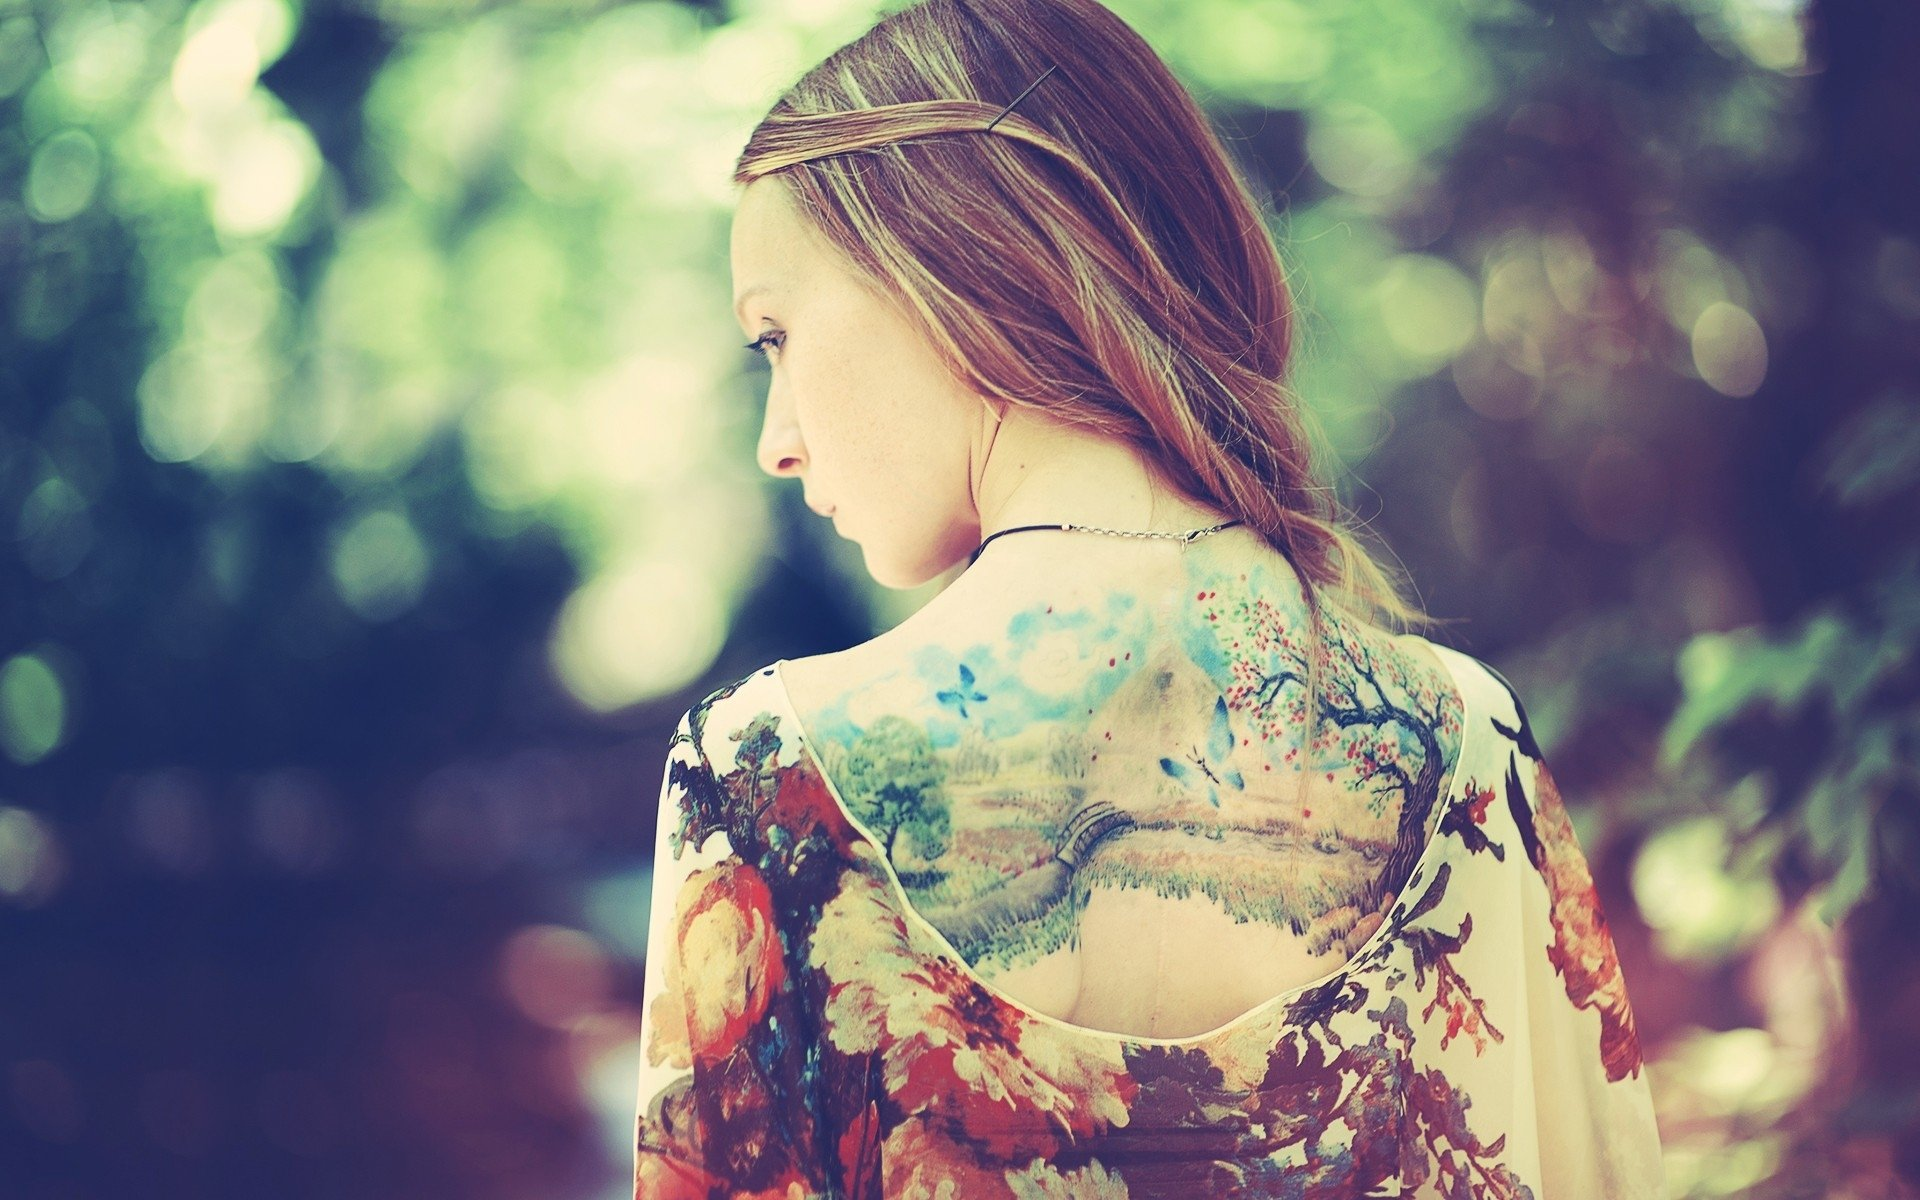 Wallpapers Girl Back Dress Tattoos Nature Background Style Fashion 1920x1200